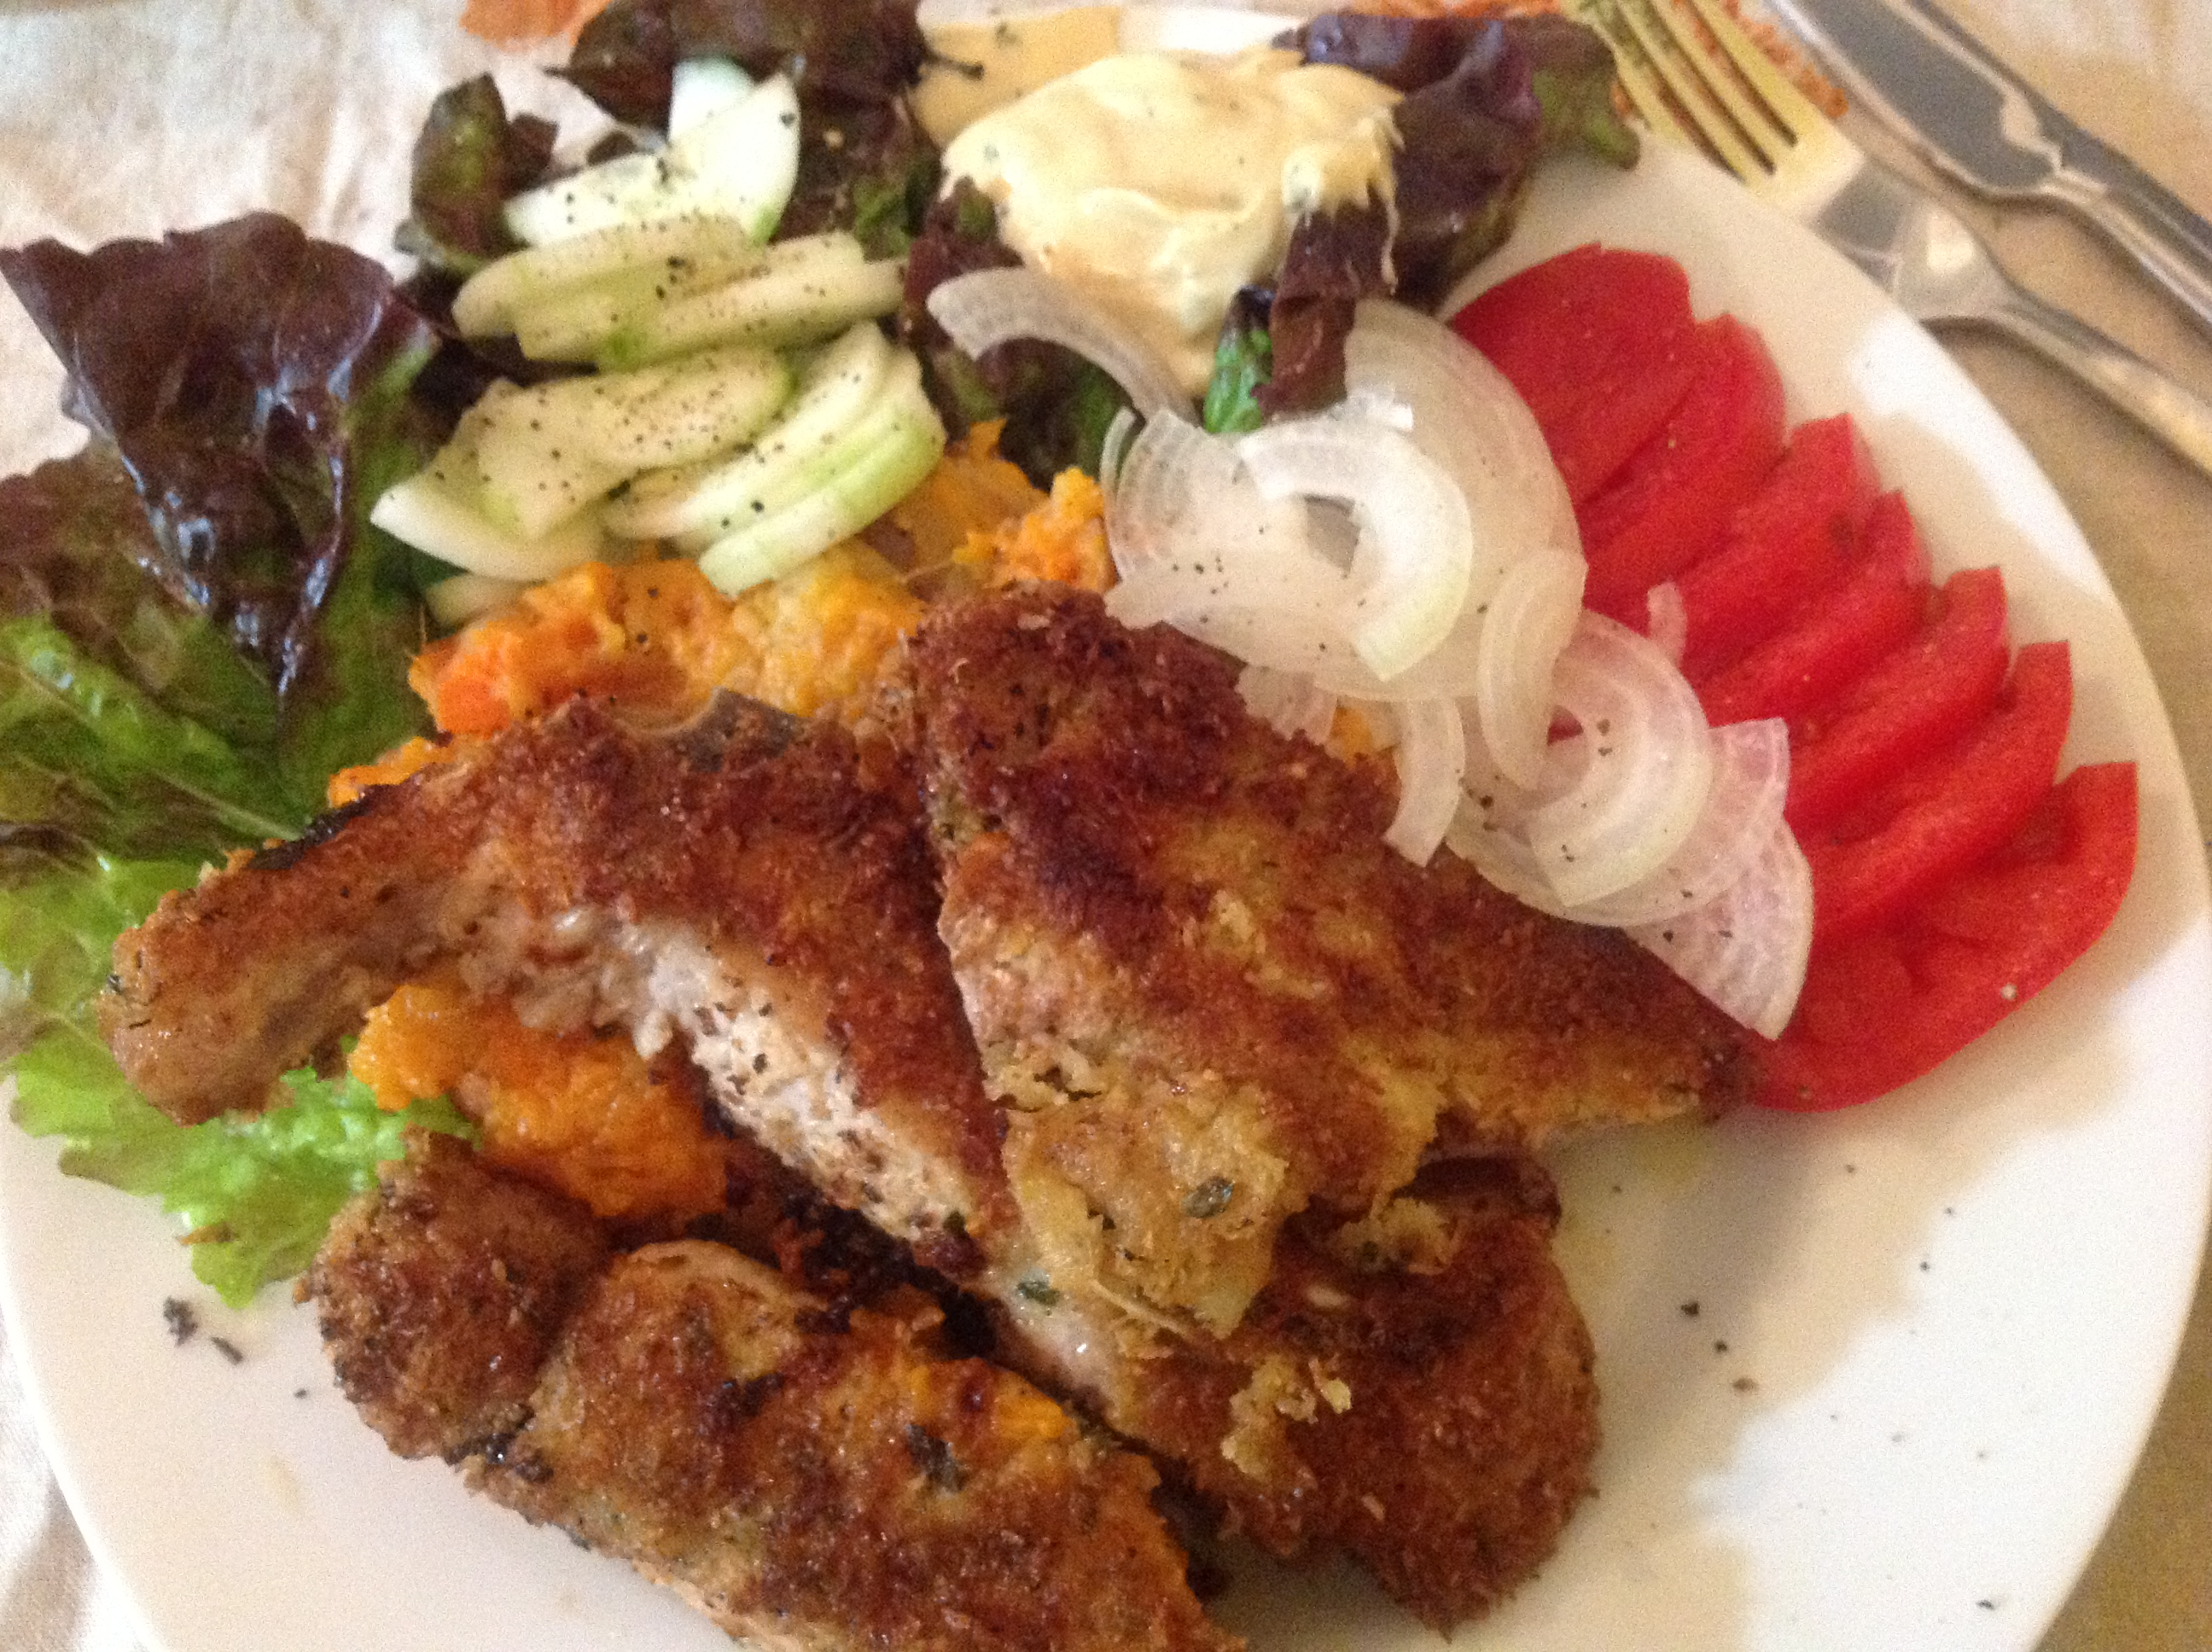 Breaded, fried meat on a white plate with vegetables